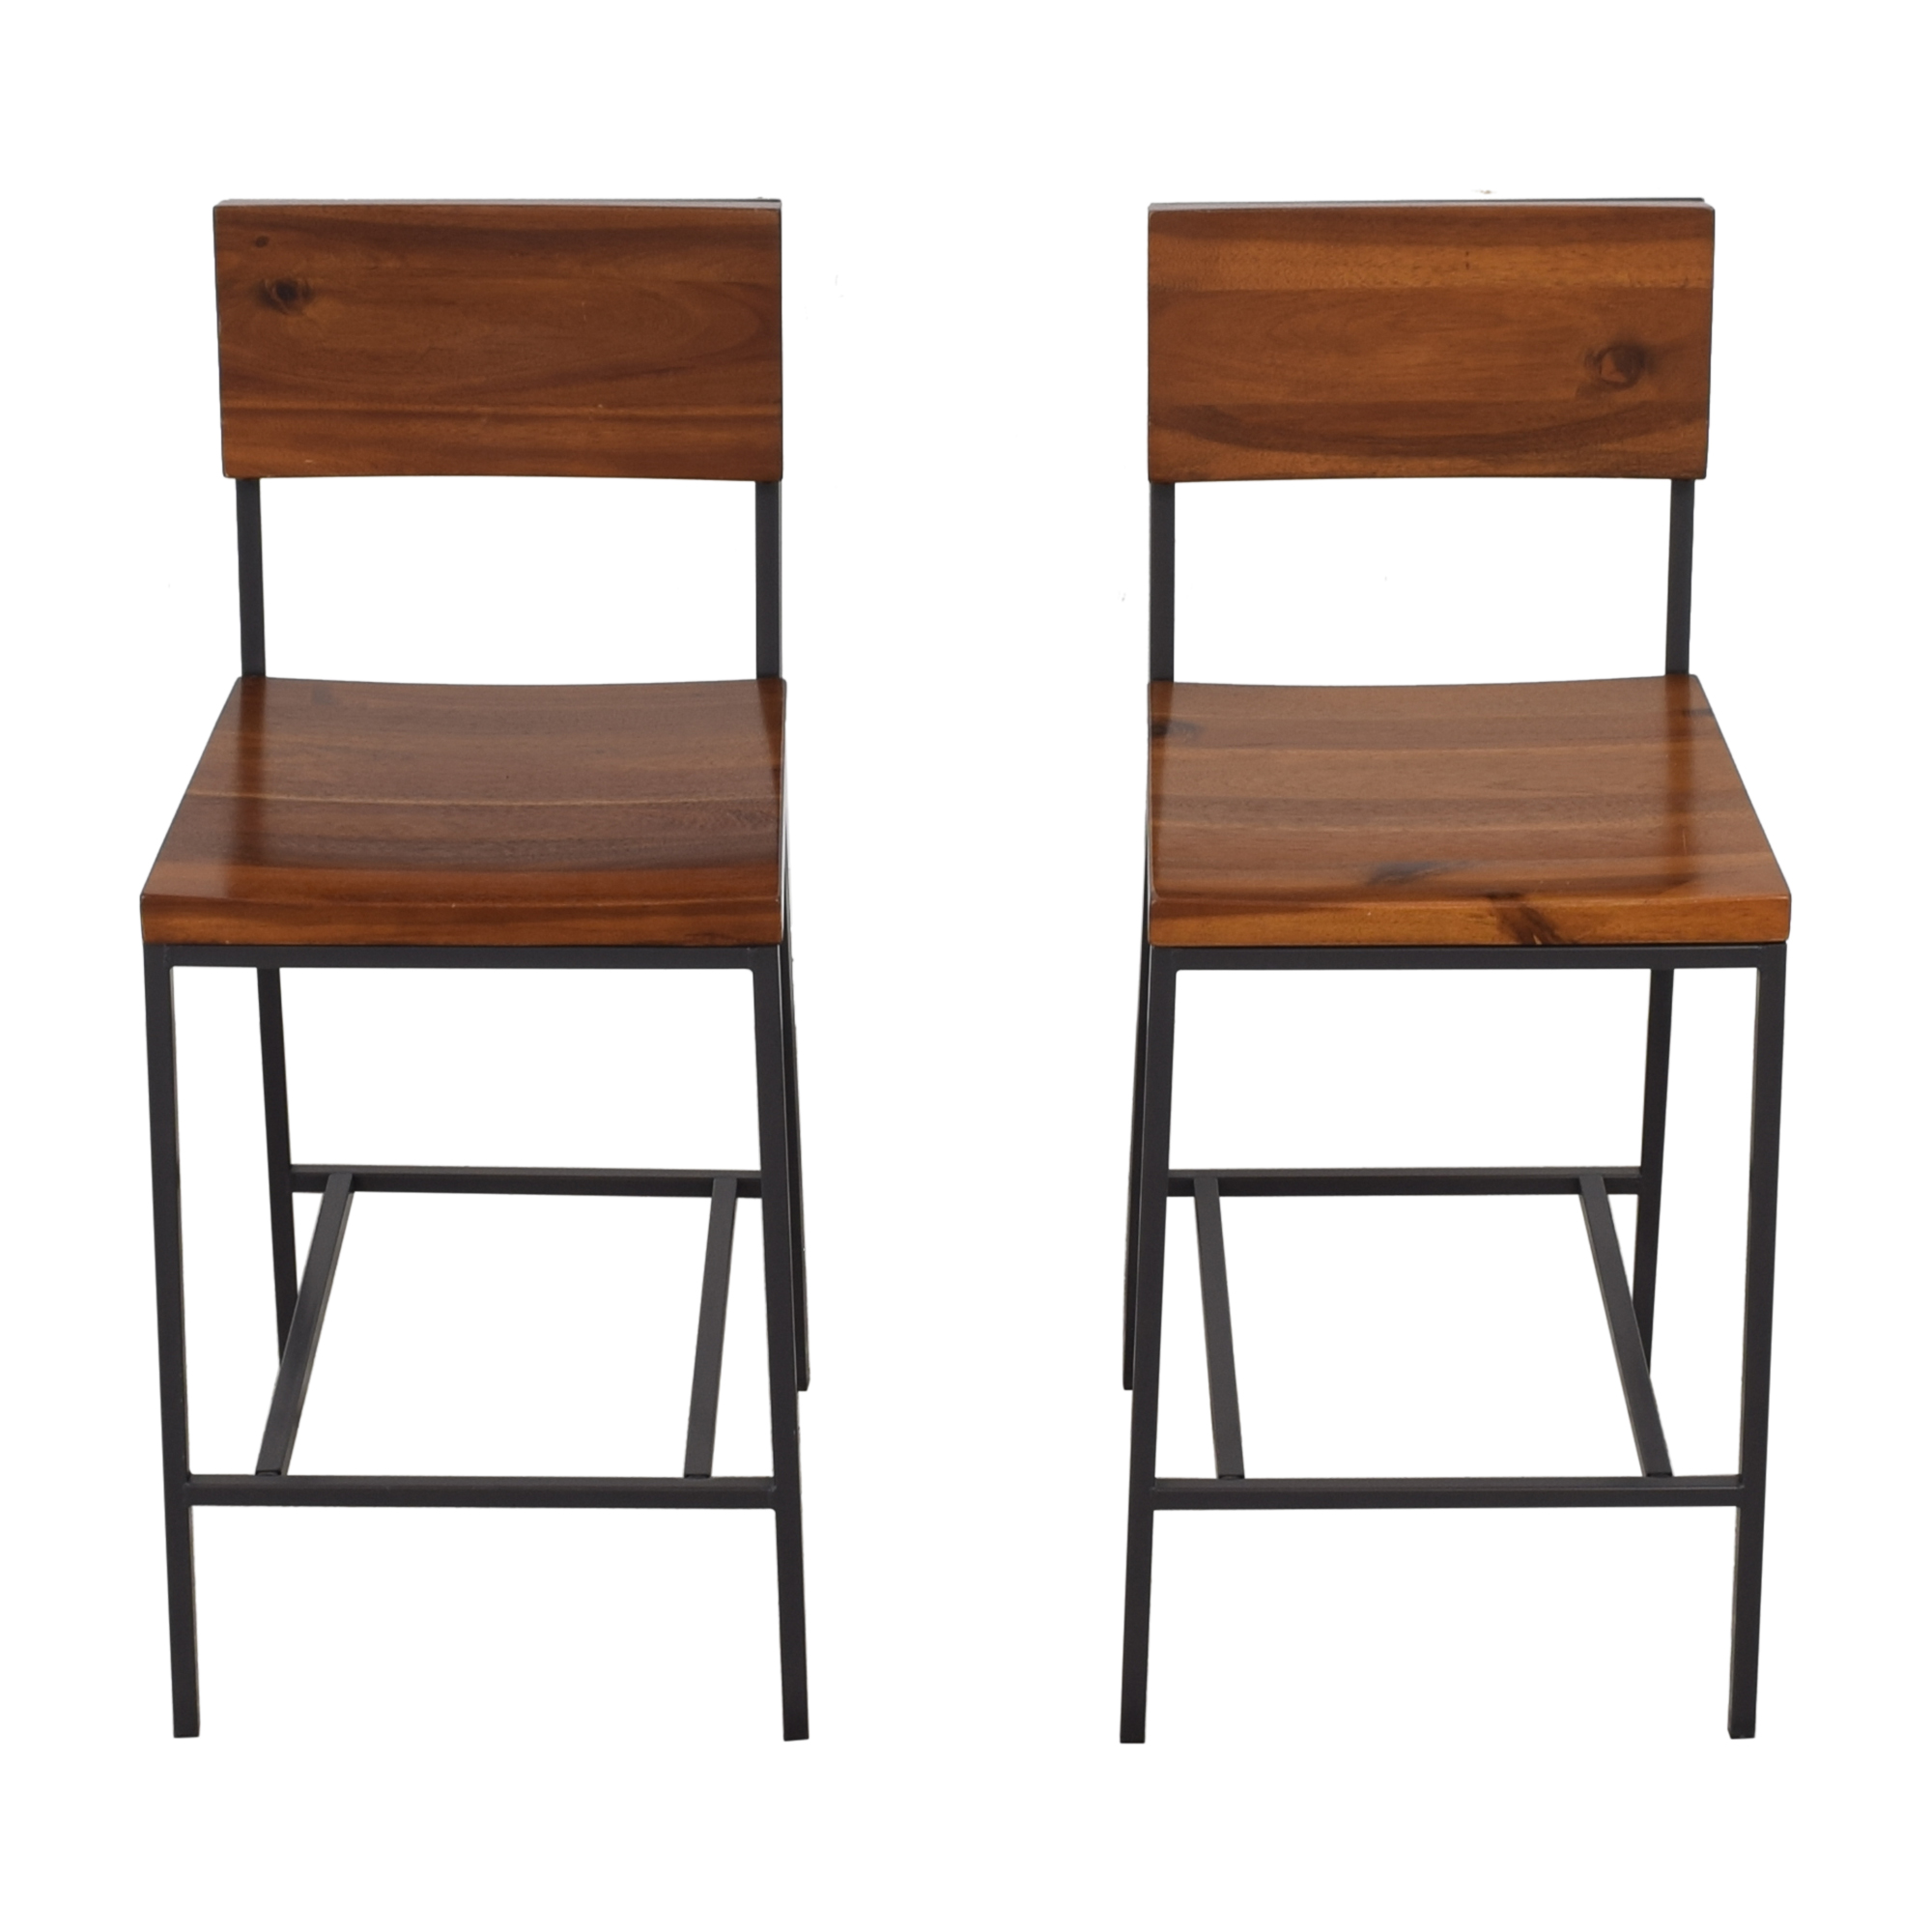 West Elm Rustic Counter Stools / Stools